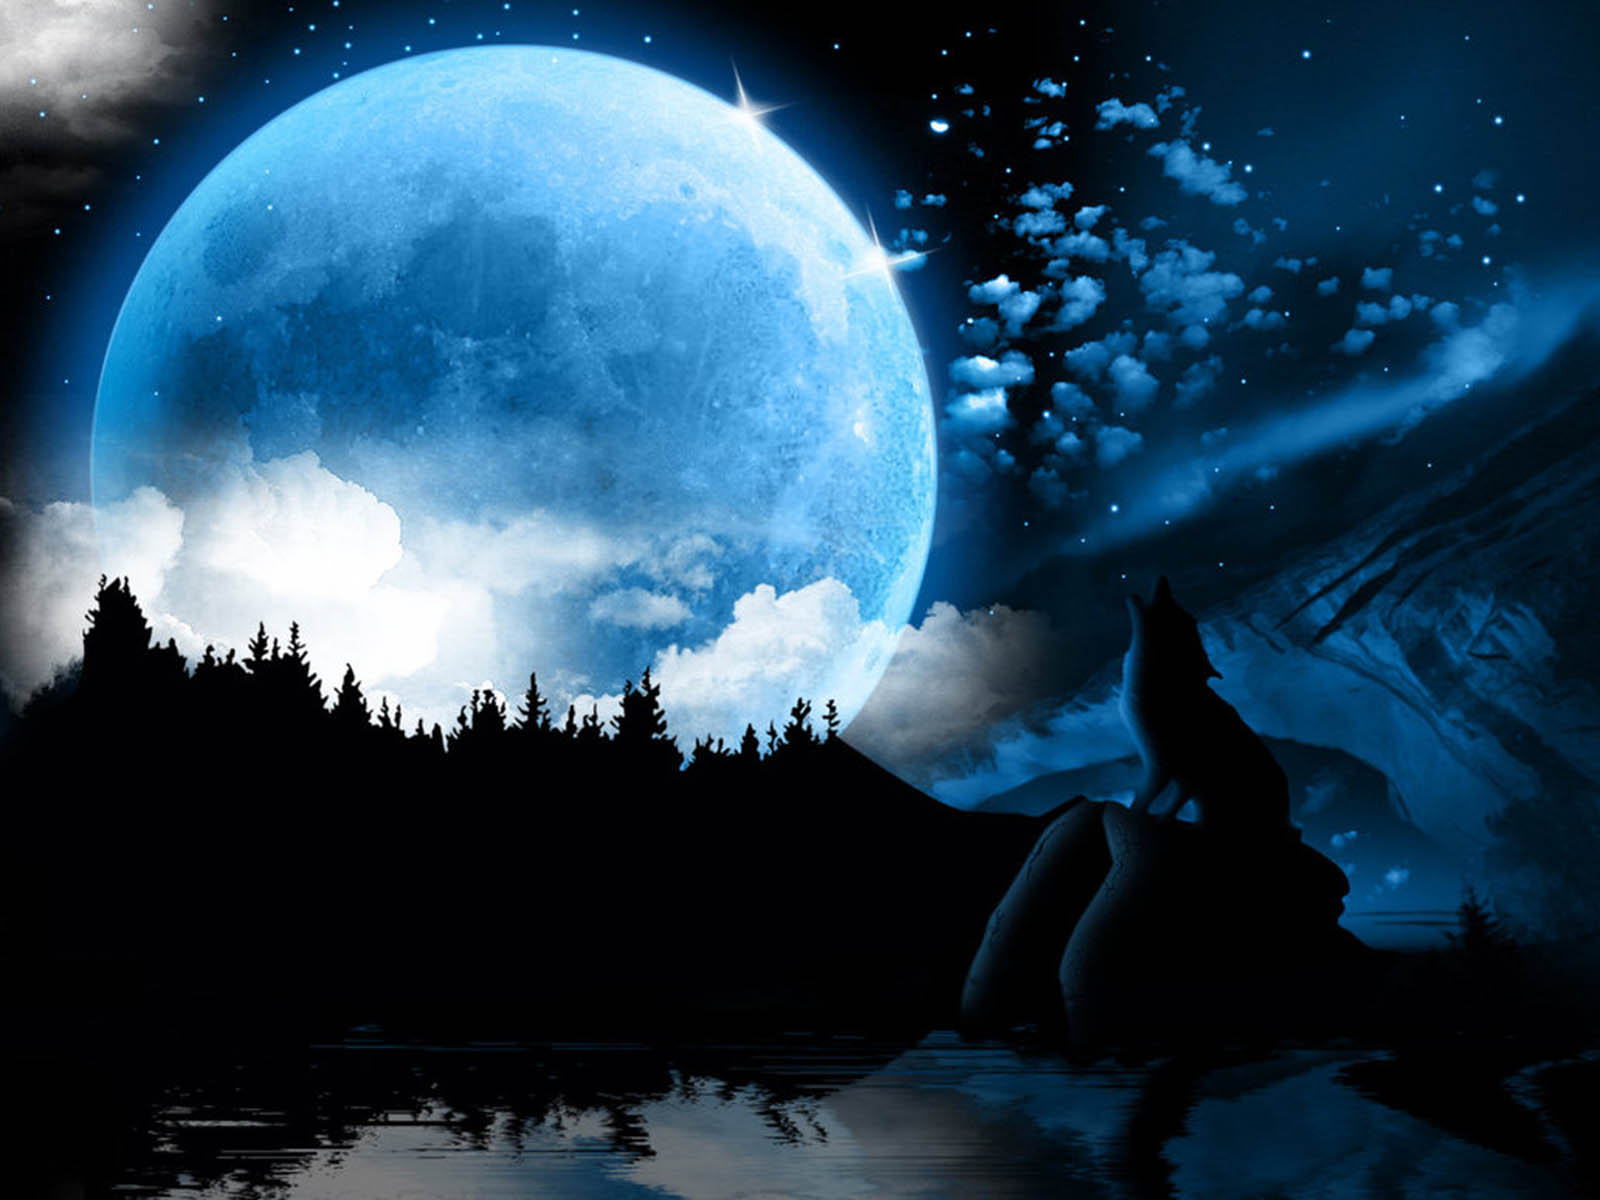 download Tag Moon Fantasy Wallpapers Backgrounds Paos Images 1600x1200